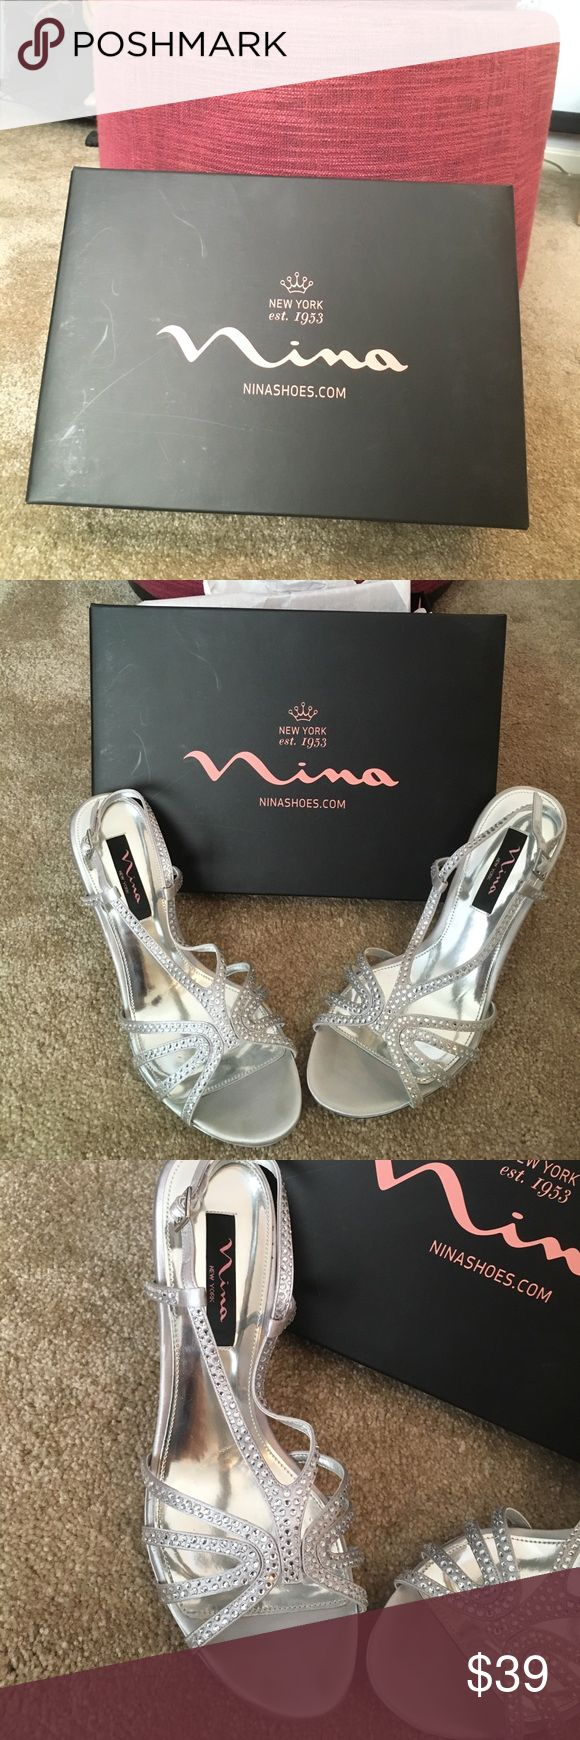 Nina shoes in silver size 9M Shoes worn twice for an event.  They are in good condition with some dirt/scuff marks on the sole of the shoe and padding.  Features rhinestones whom the straps that buckle.  Heel is approximately 3 inches.  One the right heel the slip pad in a little worn.  Overall in excellent condition.  Perfect for prom, bridesmaids or any event. Nina Shoes Heels